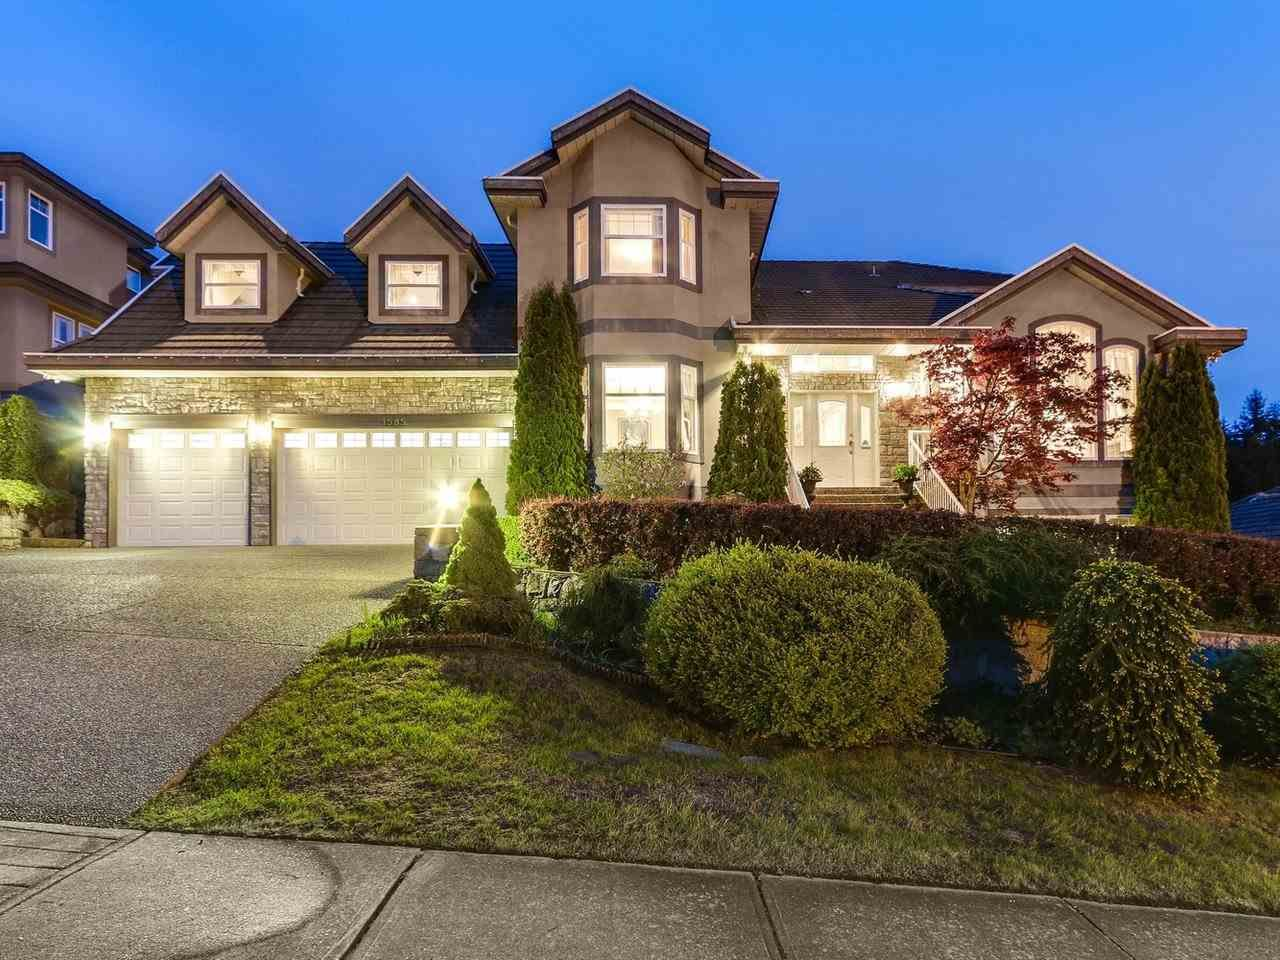 Main Photo: 1585 PARKWAY Boulevard in Coquitlam: Westwood Plateau House for sale : MLS®# R2541380